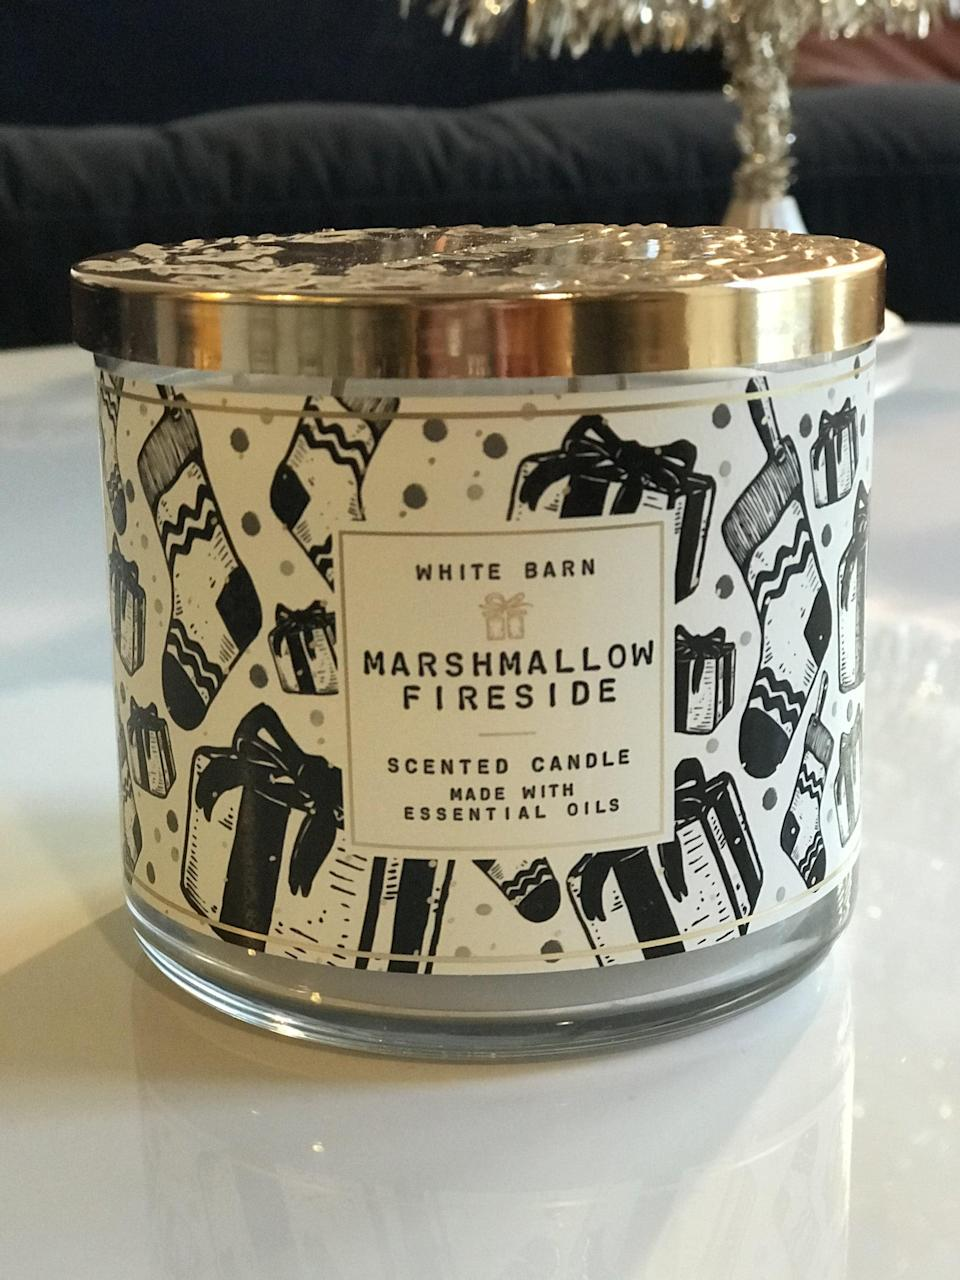 <p><span>Marshmallow Fireside 3-Wick Candle</span> ($15, originally $25)</p> <p><strong>What It Smells Like:</strong> Roasting s'mores while sitting on a log.</p>